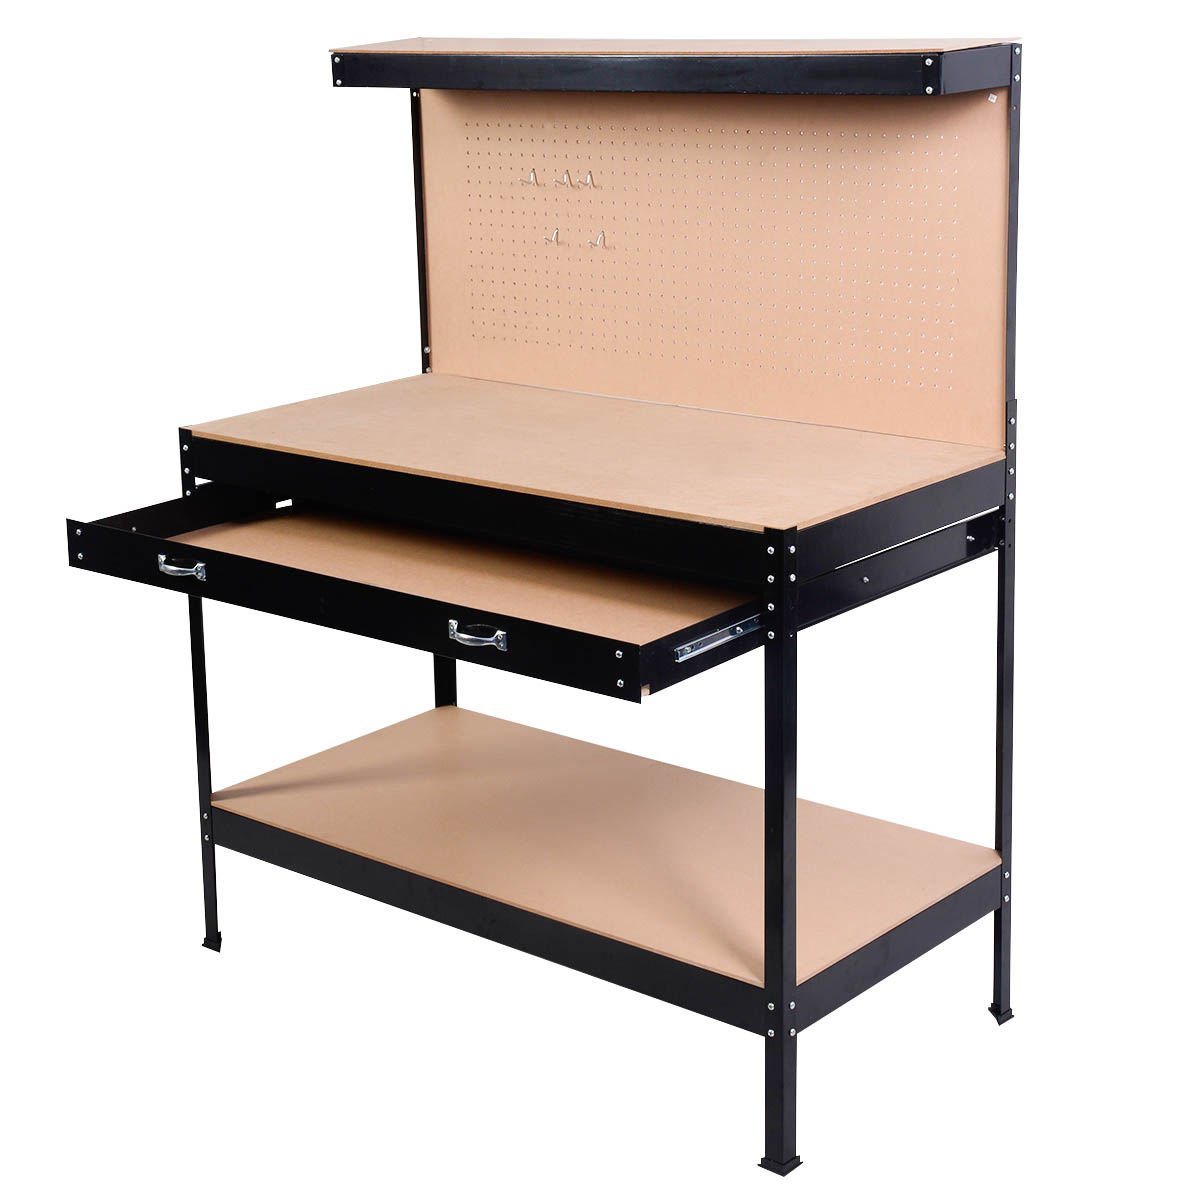 Work Bench Tool Storage Steel Frame Workshop Table W/ Drawer & Peg Board by Allblessings (Image #9)